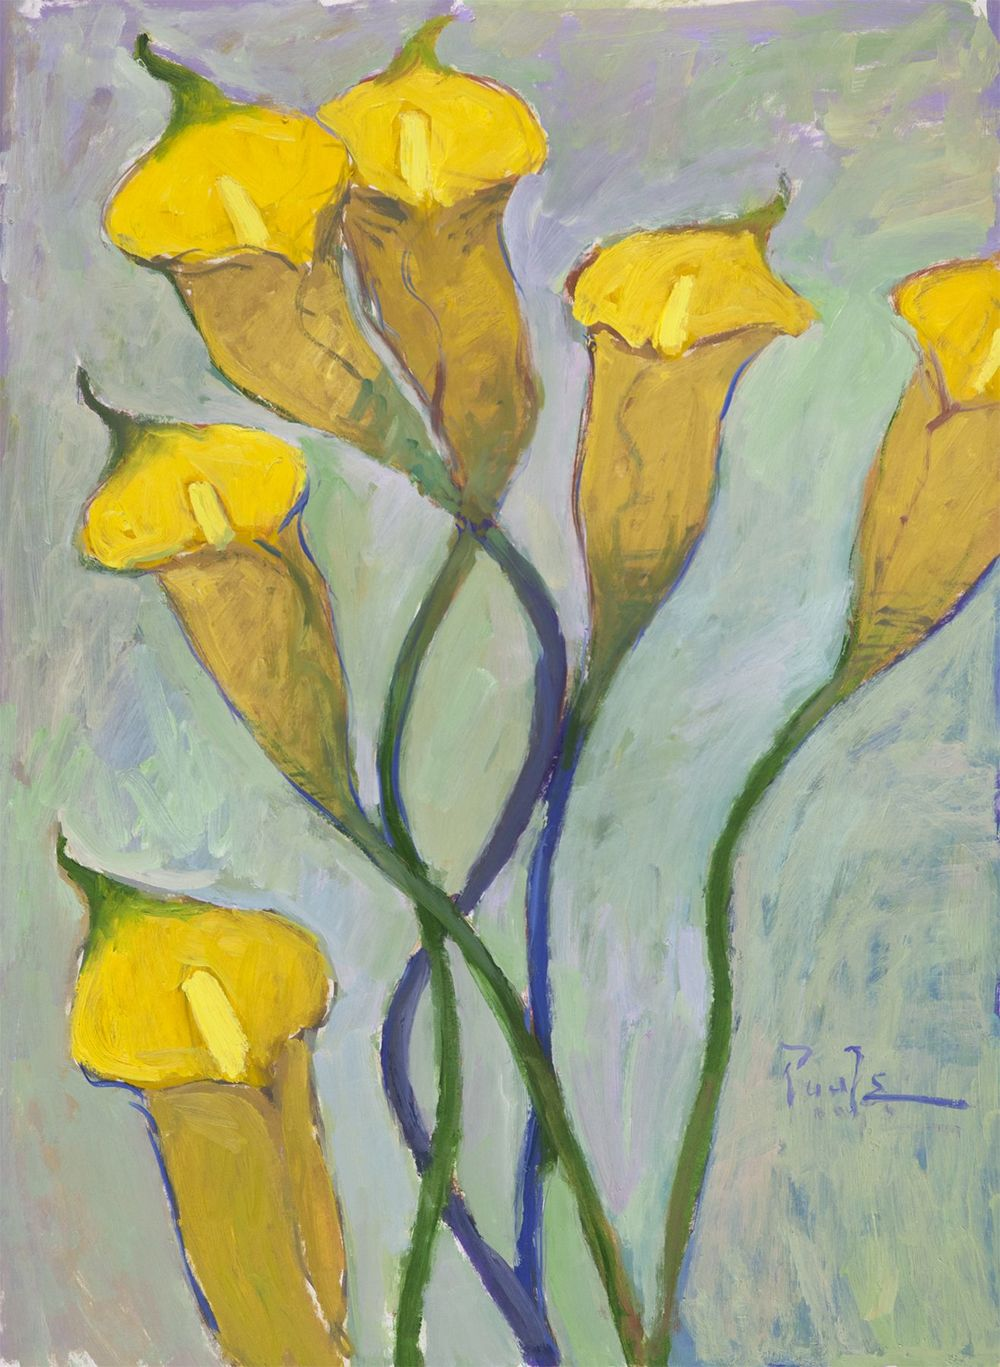 YellowFlowers 1.jpg